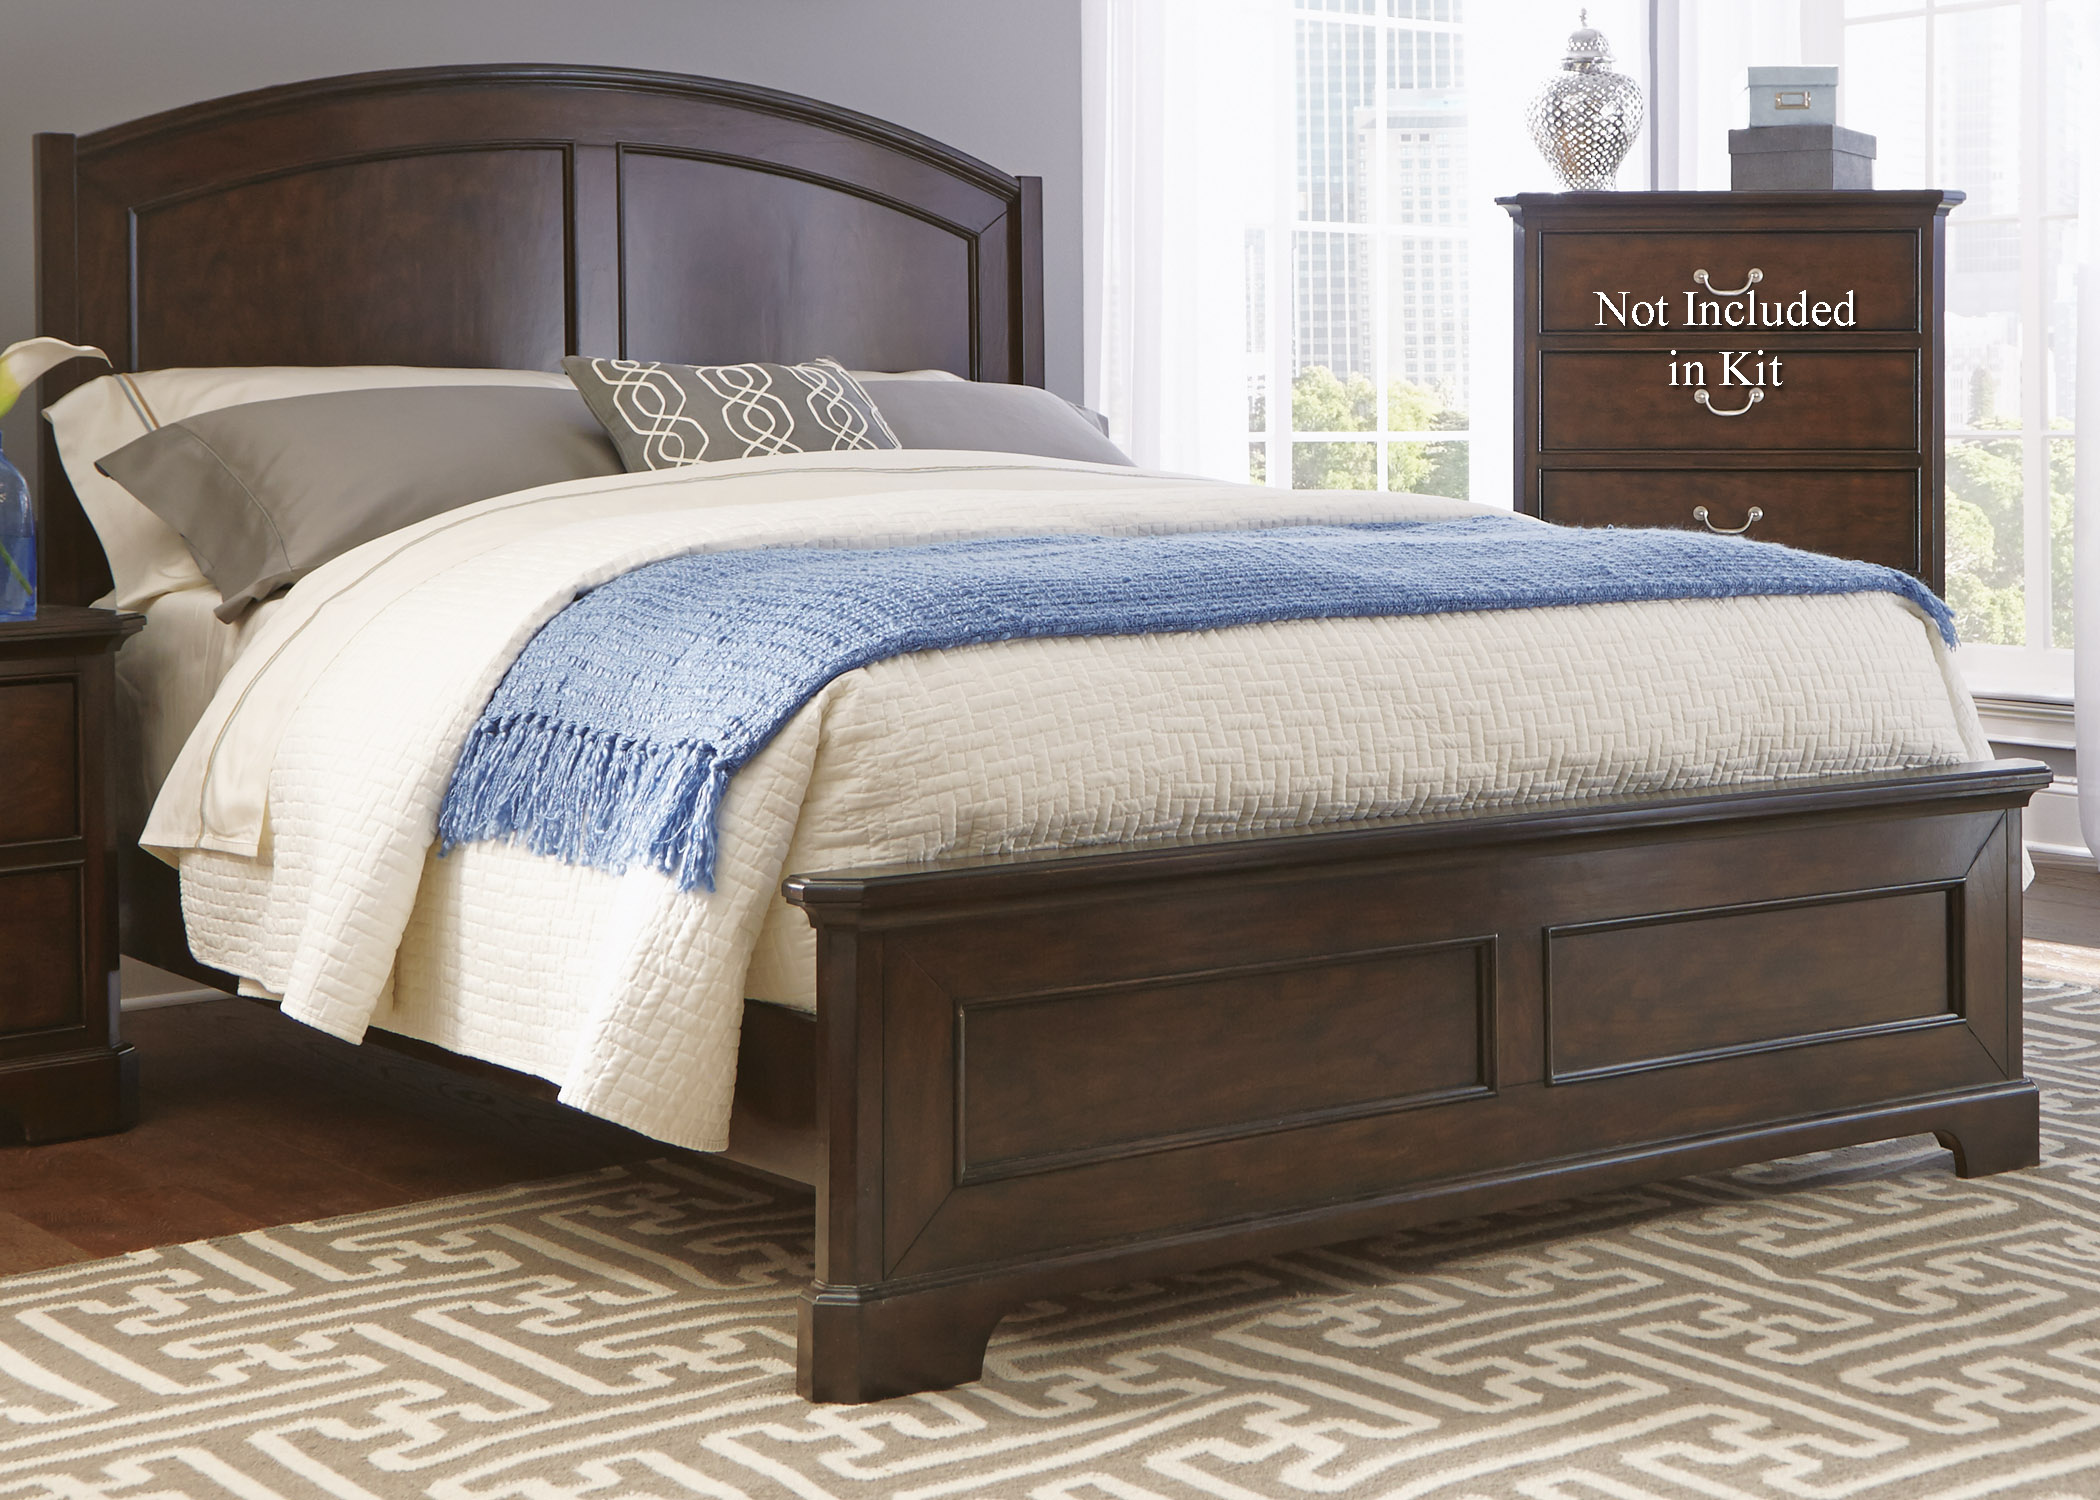 Liberty Furniture Avington Queen Panel Bed  - Item Number: 172-BR-QPB